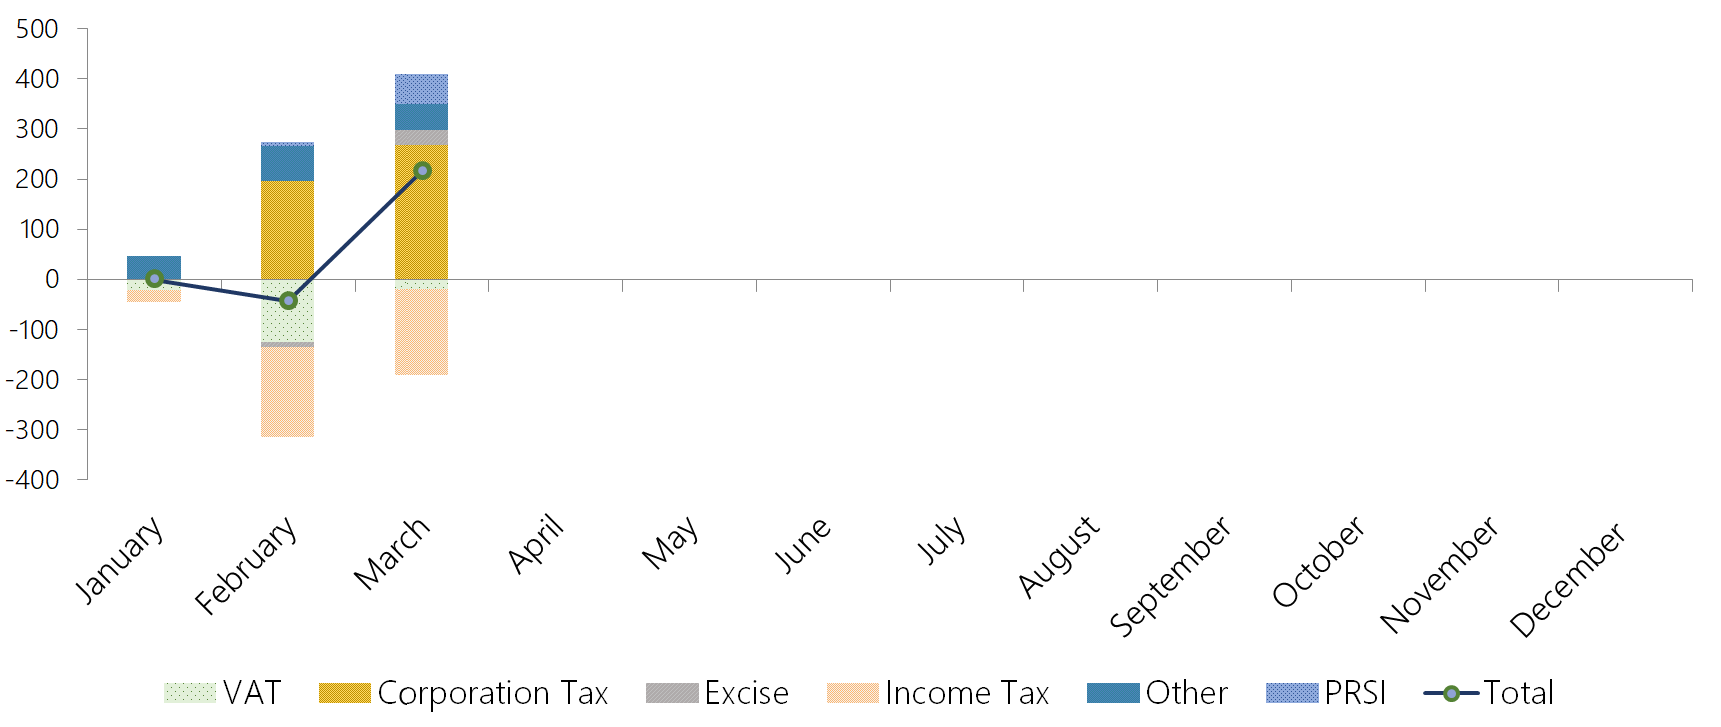 This graph shows the tax revenue and PRSI performance to end-March 2019. Overperforming corporation tax, together with strong PRSI and other revenue have offset underpeforming income tax and VAT receipts.